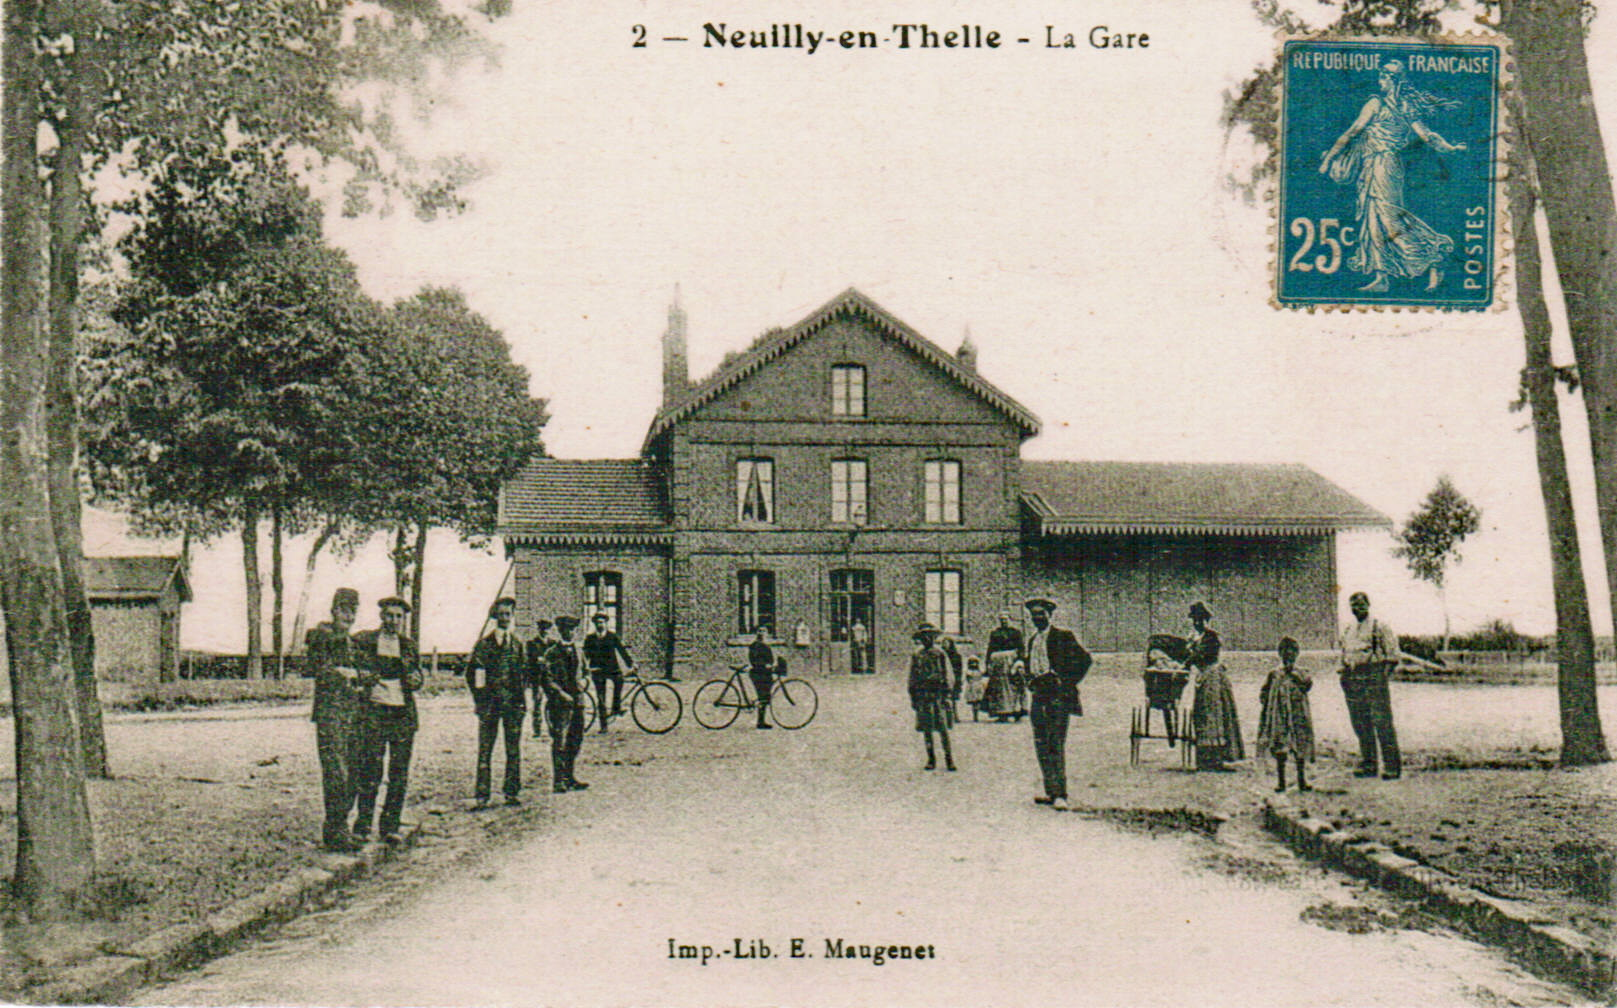 Rencontre neuilly en thelle